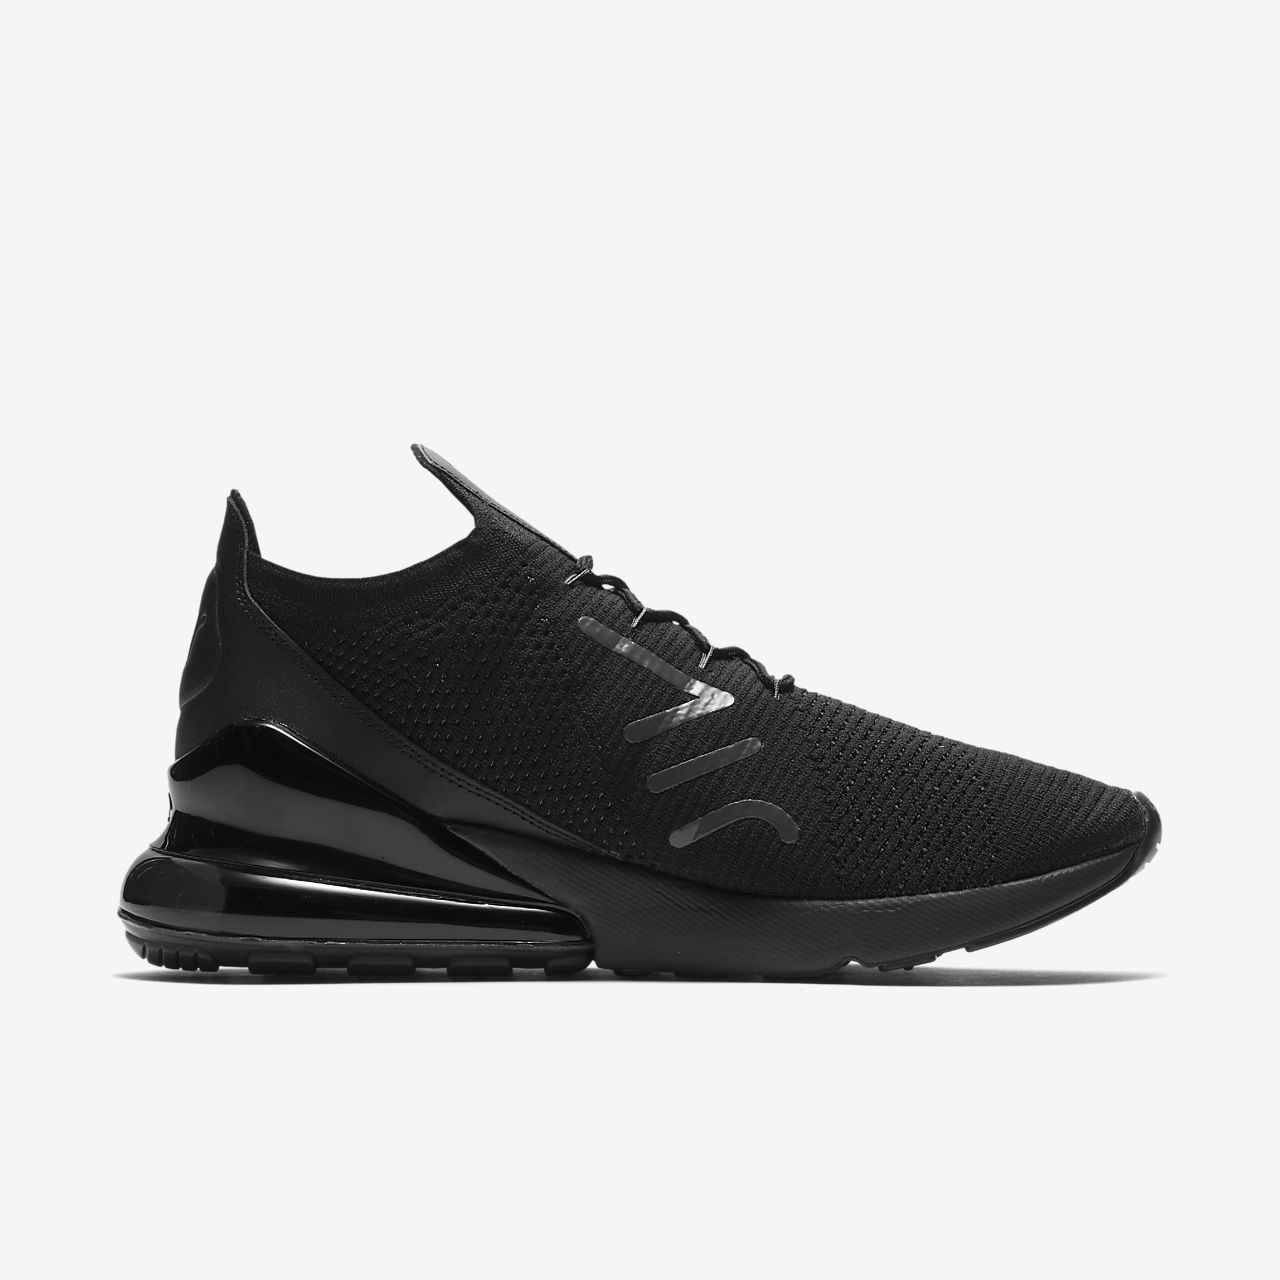 finest selection cd1d1 0ddc3 Nike Air Max 270 Flyknit Men's Shoe